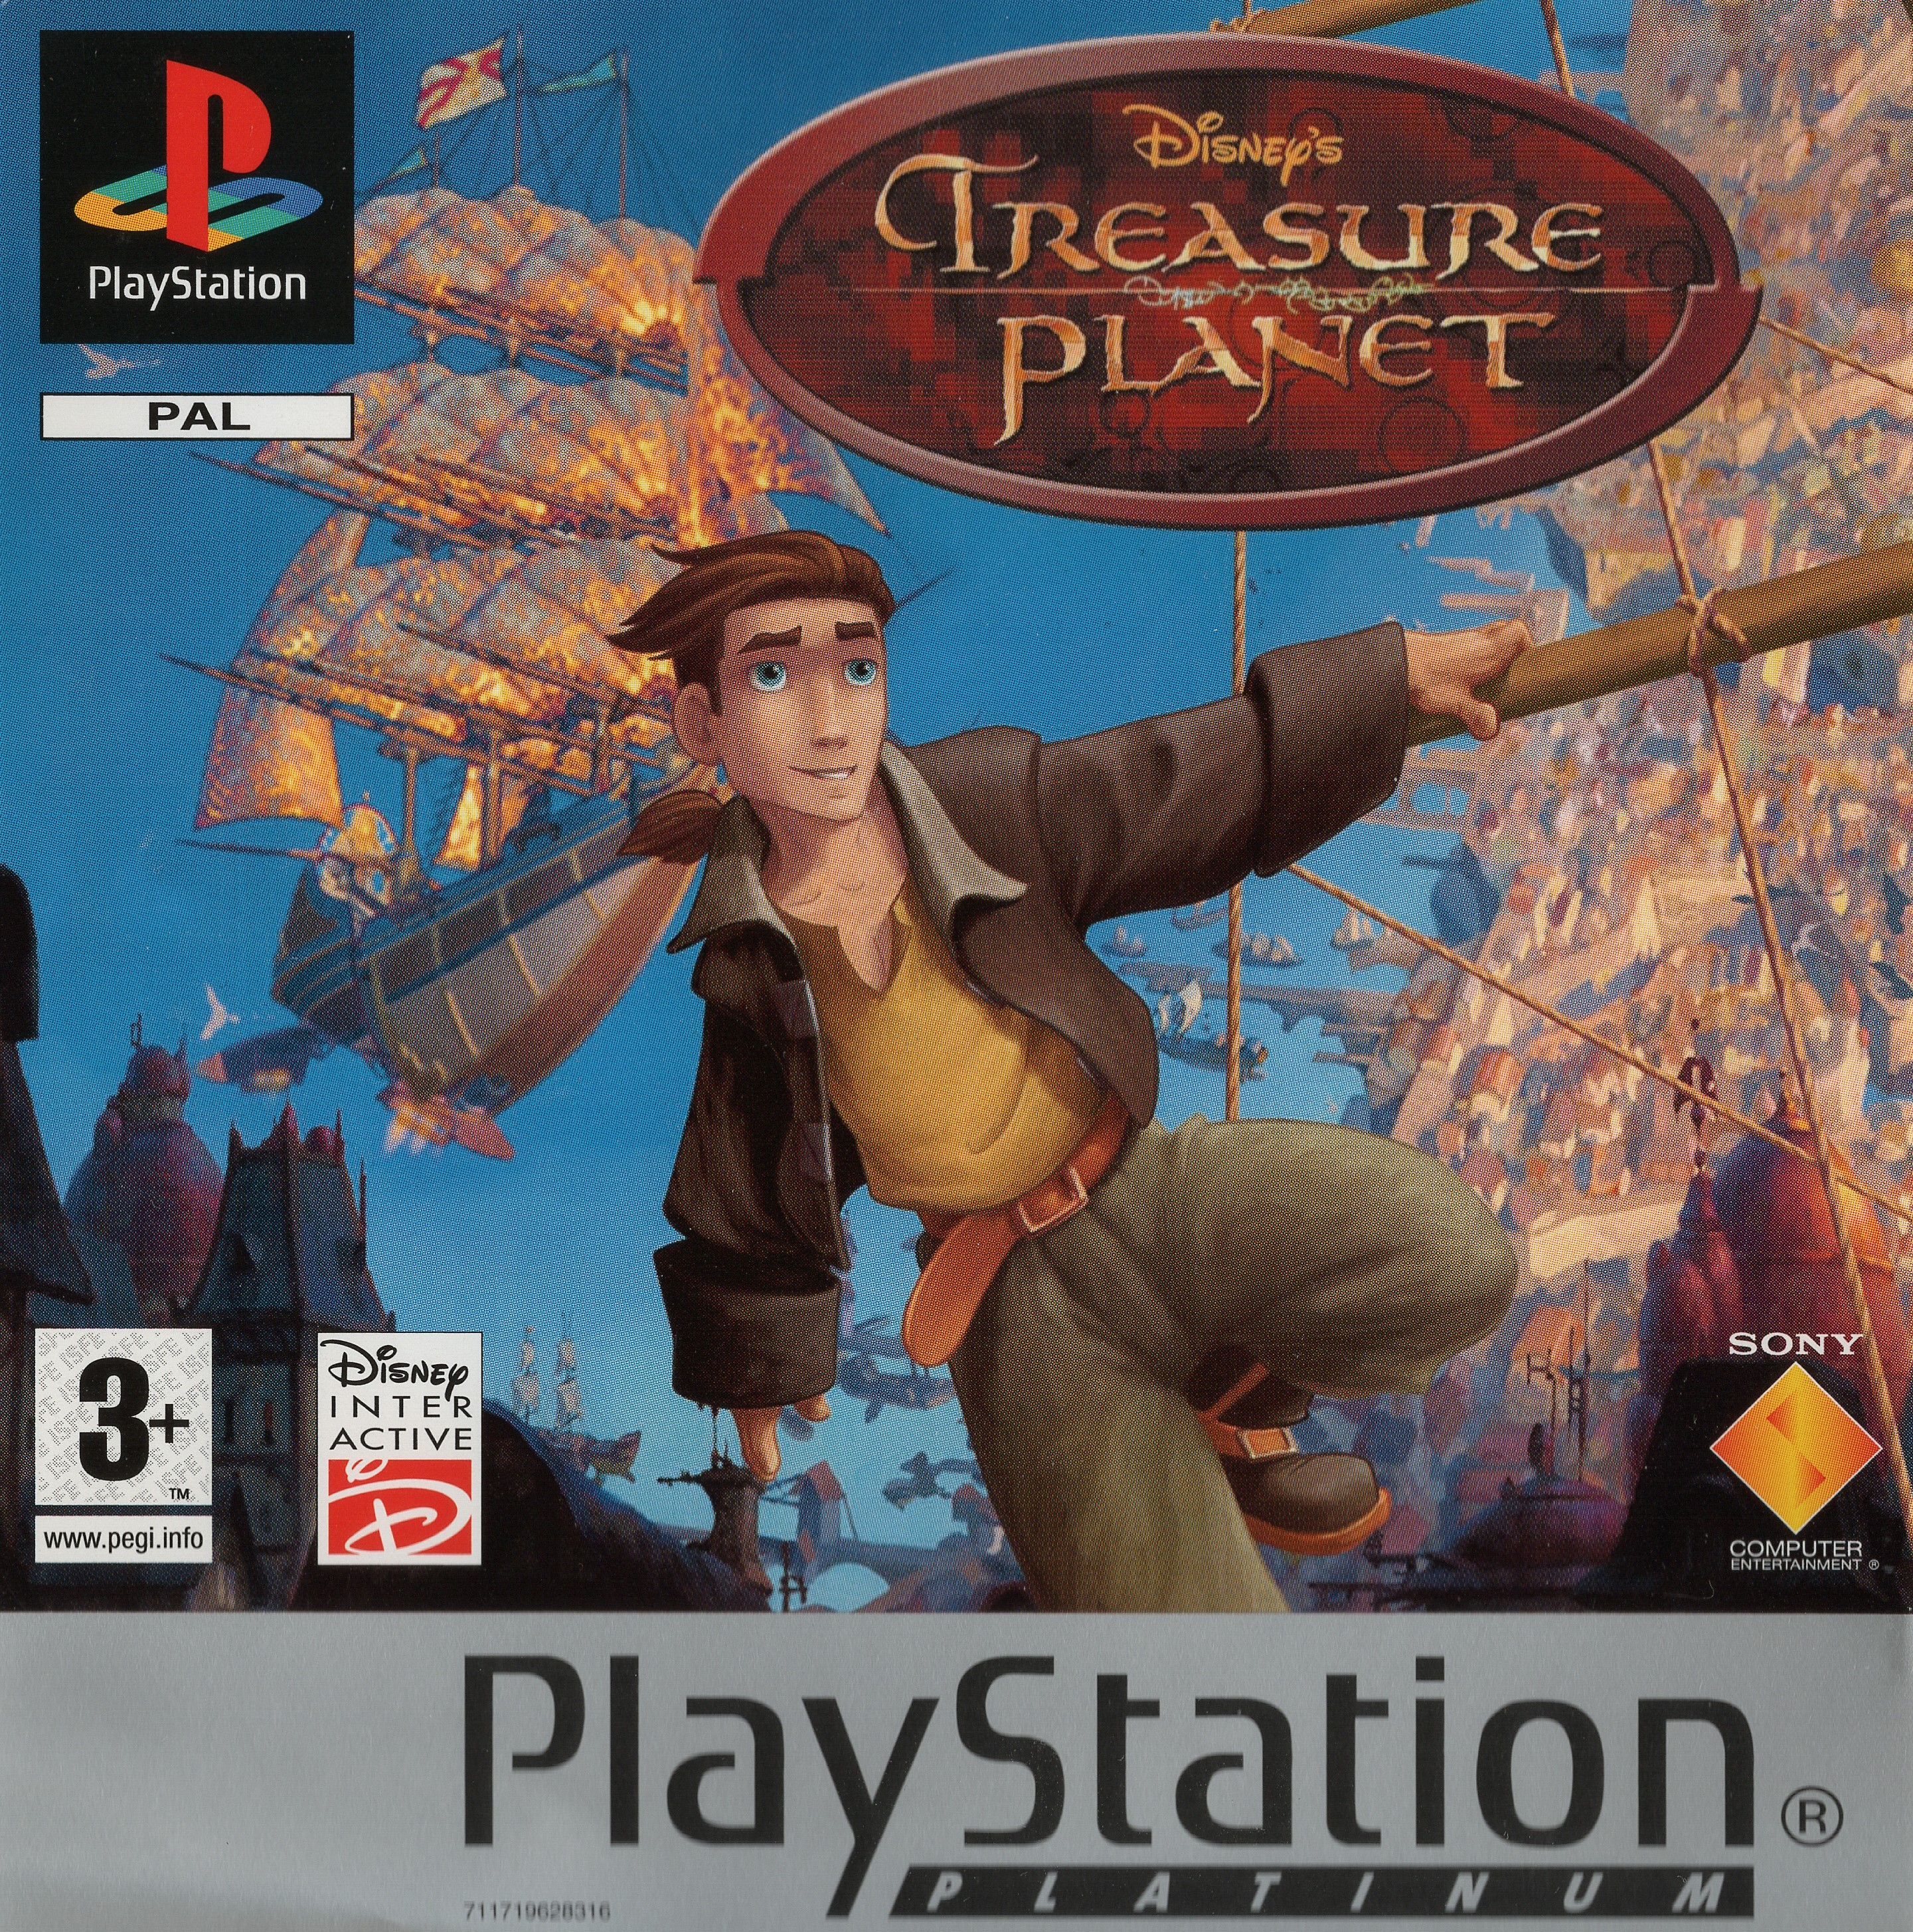 Disneys Treasure Planet